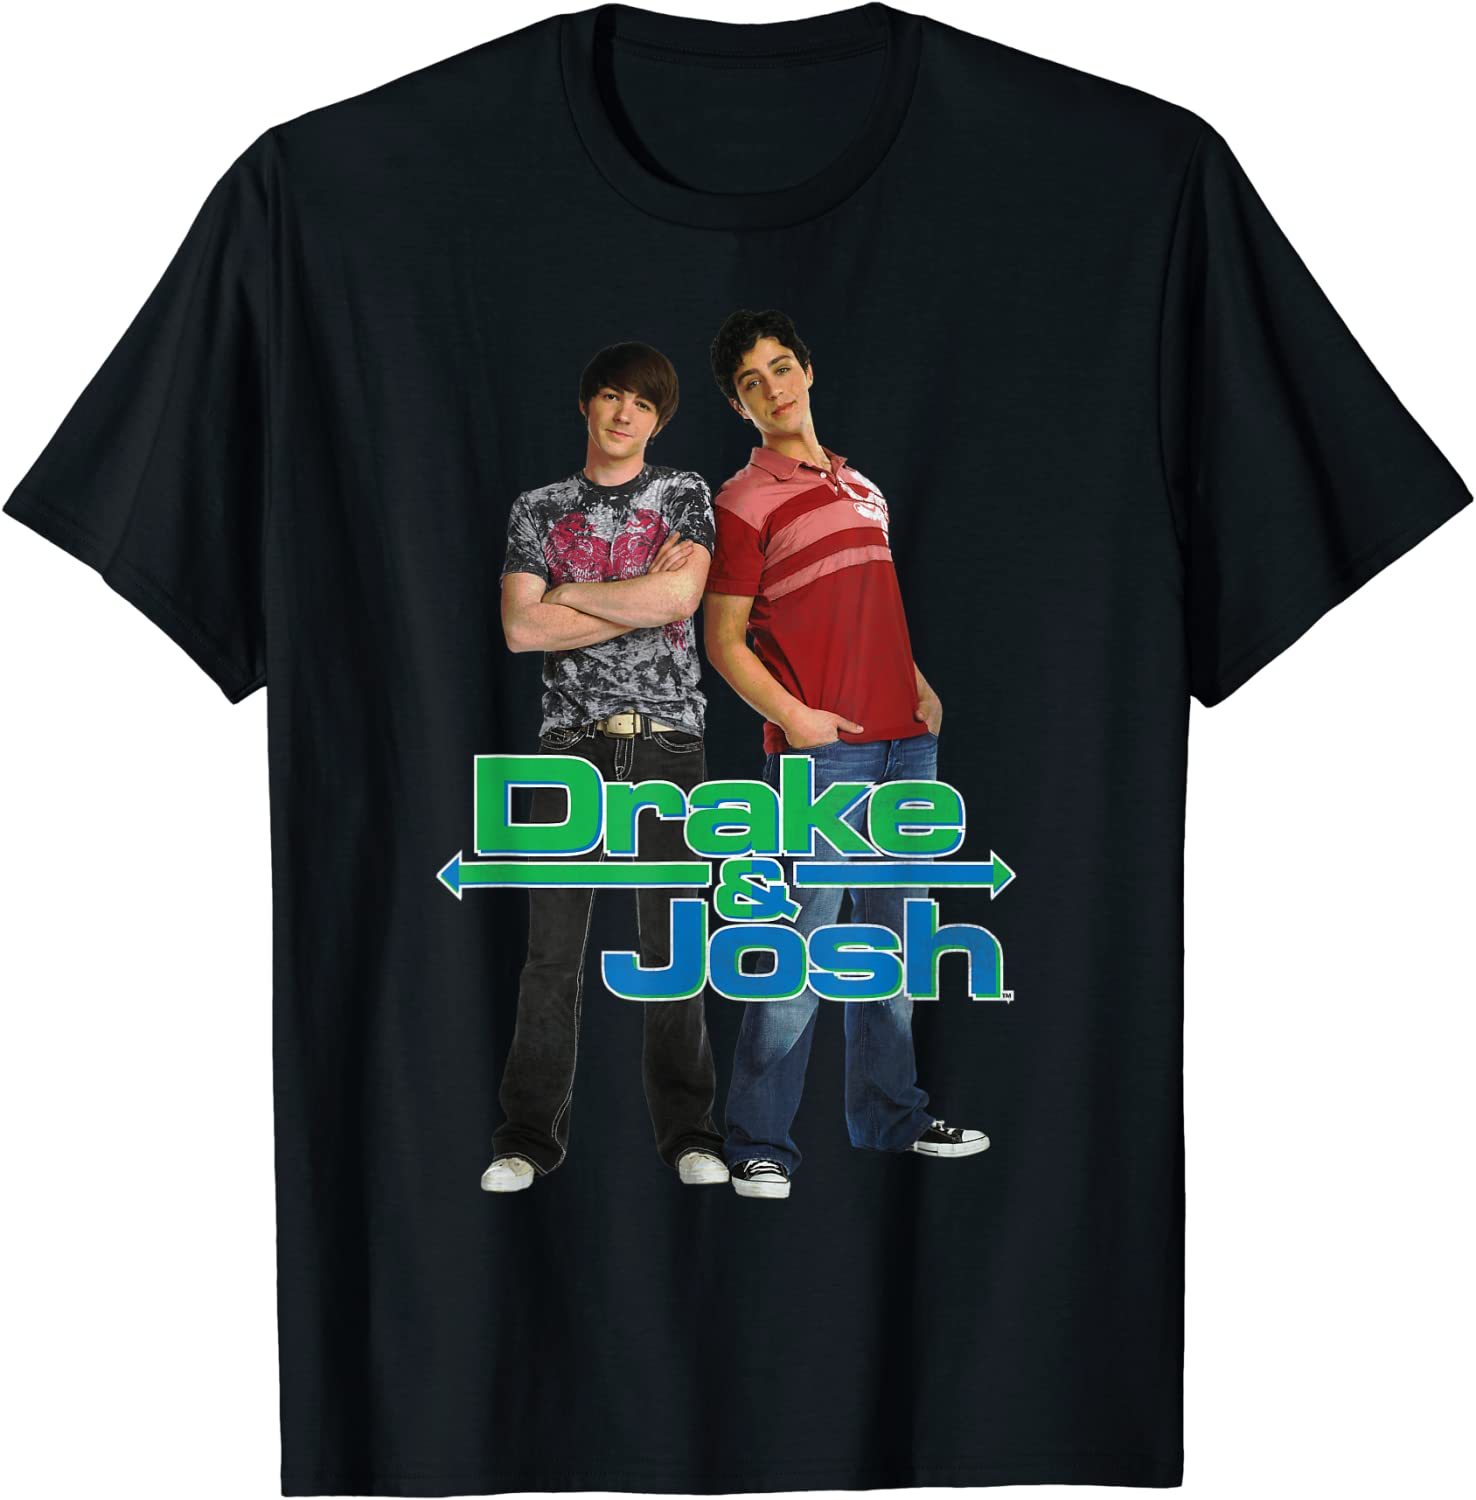 Drake And Josh Classic With T-Shirt Logo Free shipfree shipping on posting reviews Characters